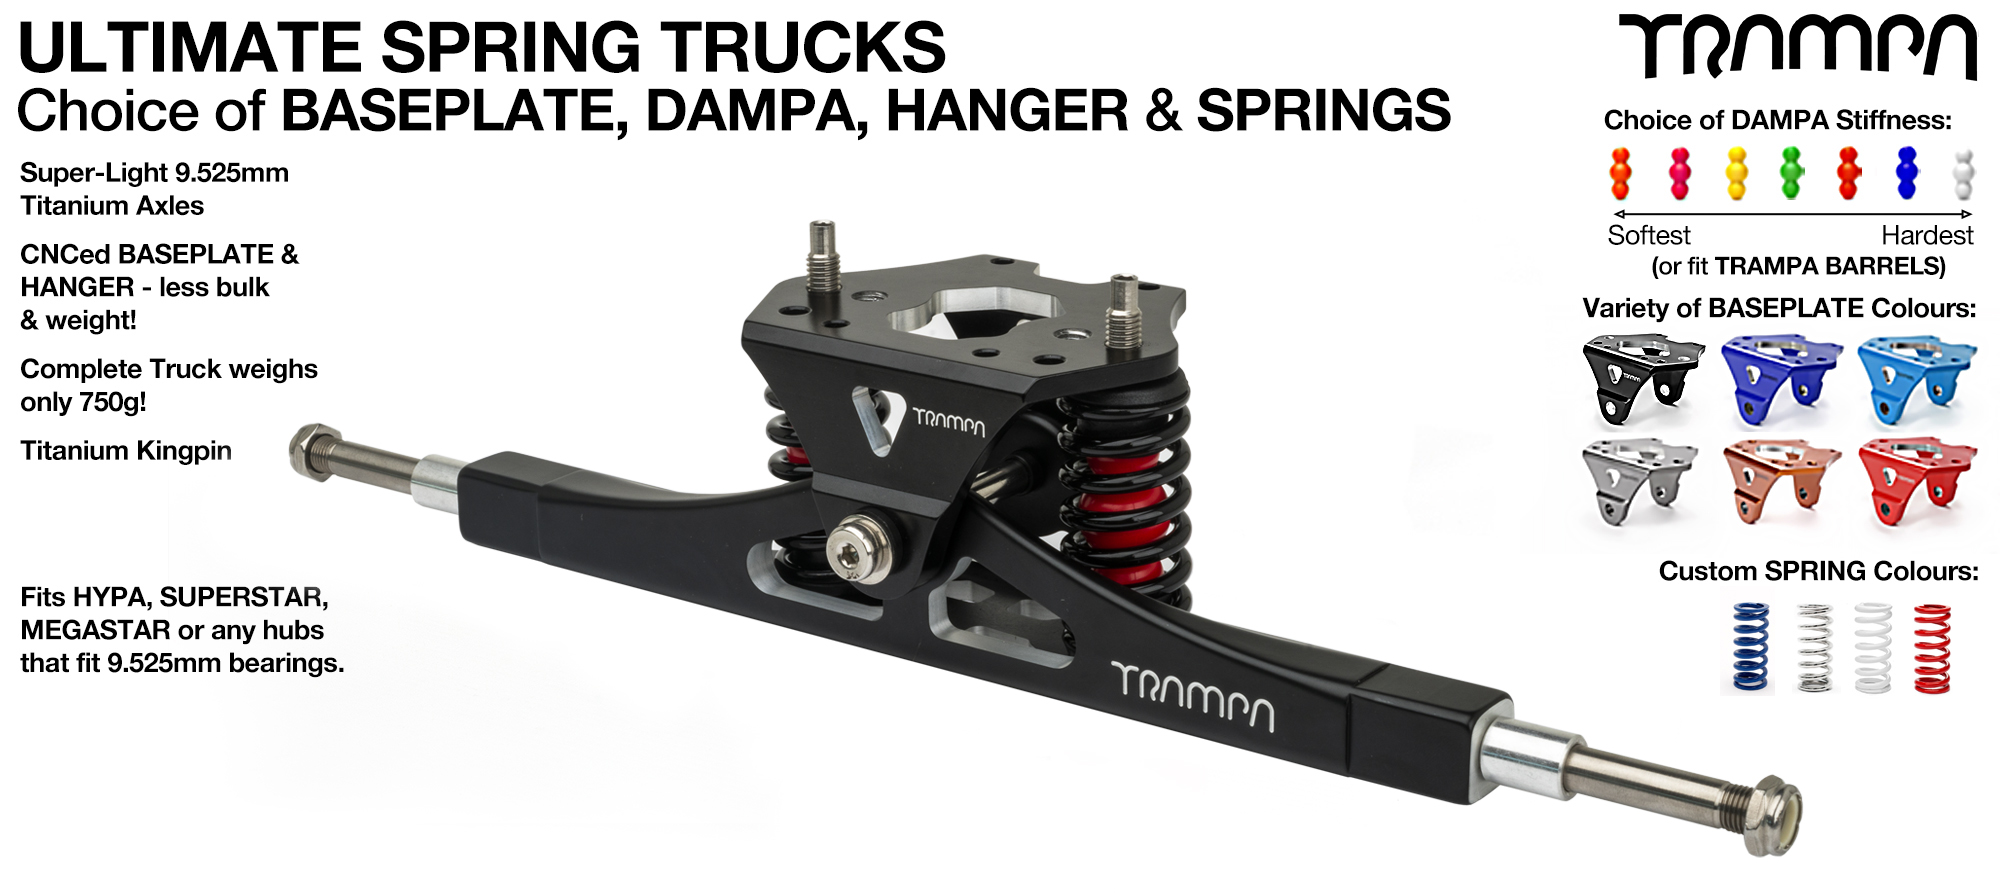 Precision CNC ULTIMATE ATB TRUCK with CNC Motor Mount fixing points & TRAMPA Baseplate, TITANIUM Axles & Kingpin